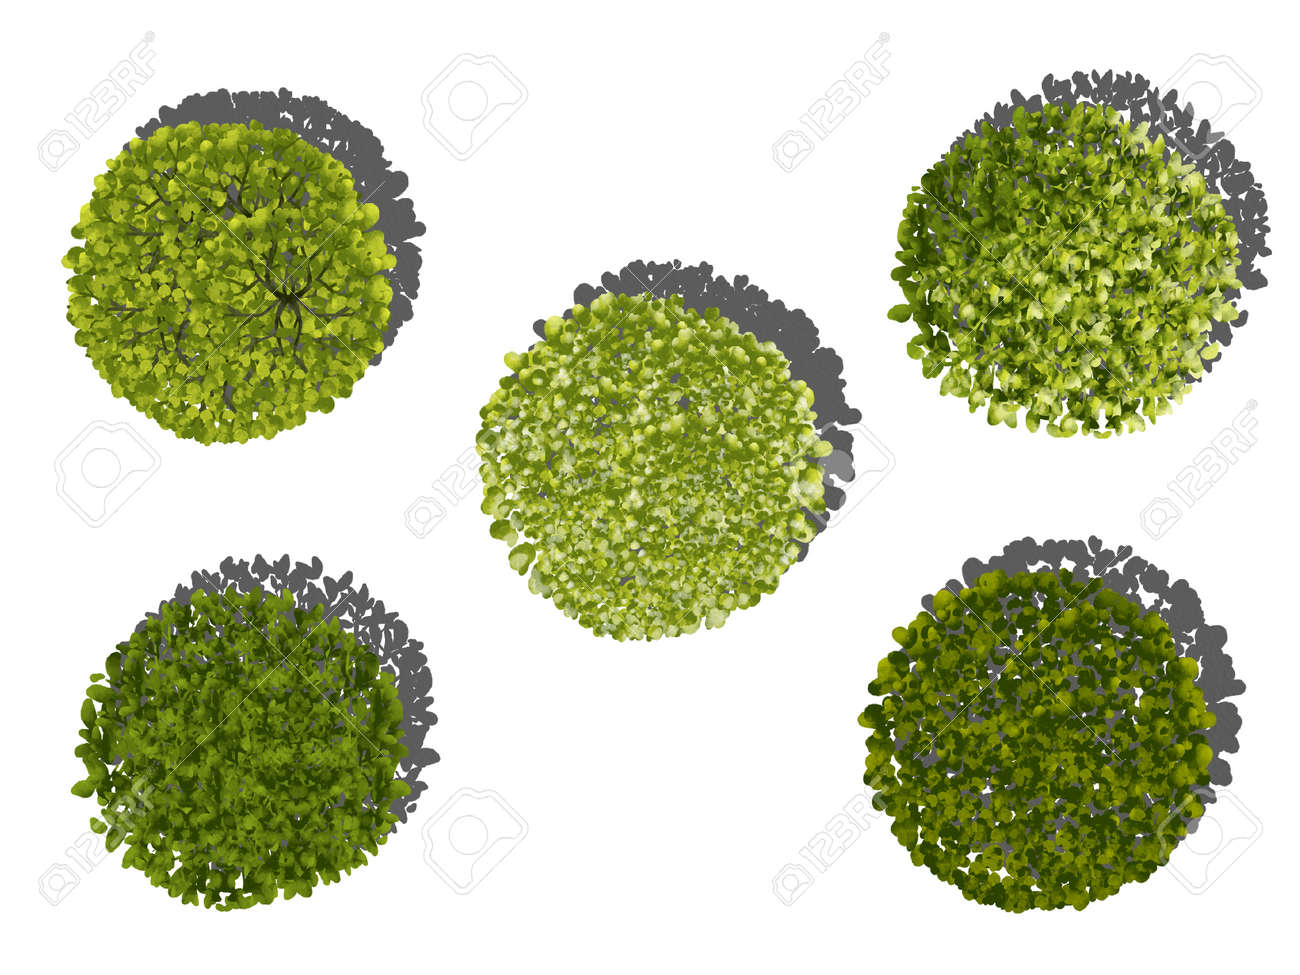 Collection of abstract watercolor green tree top view isolated on white background for landscape plan and architecture layout drawing, elements for environment and garden. - 157263290